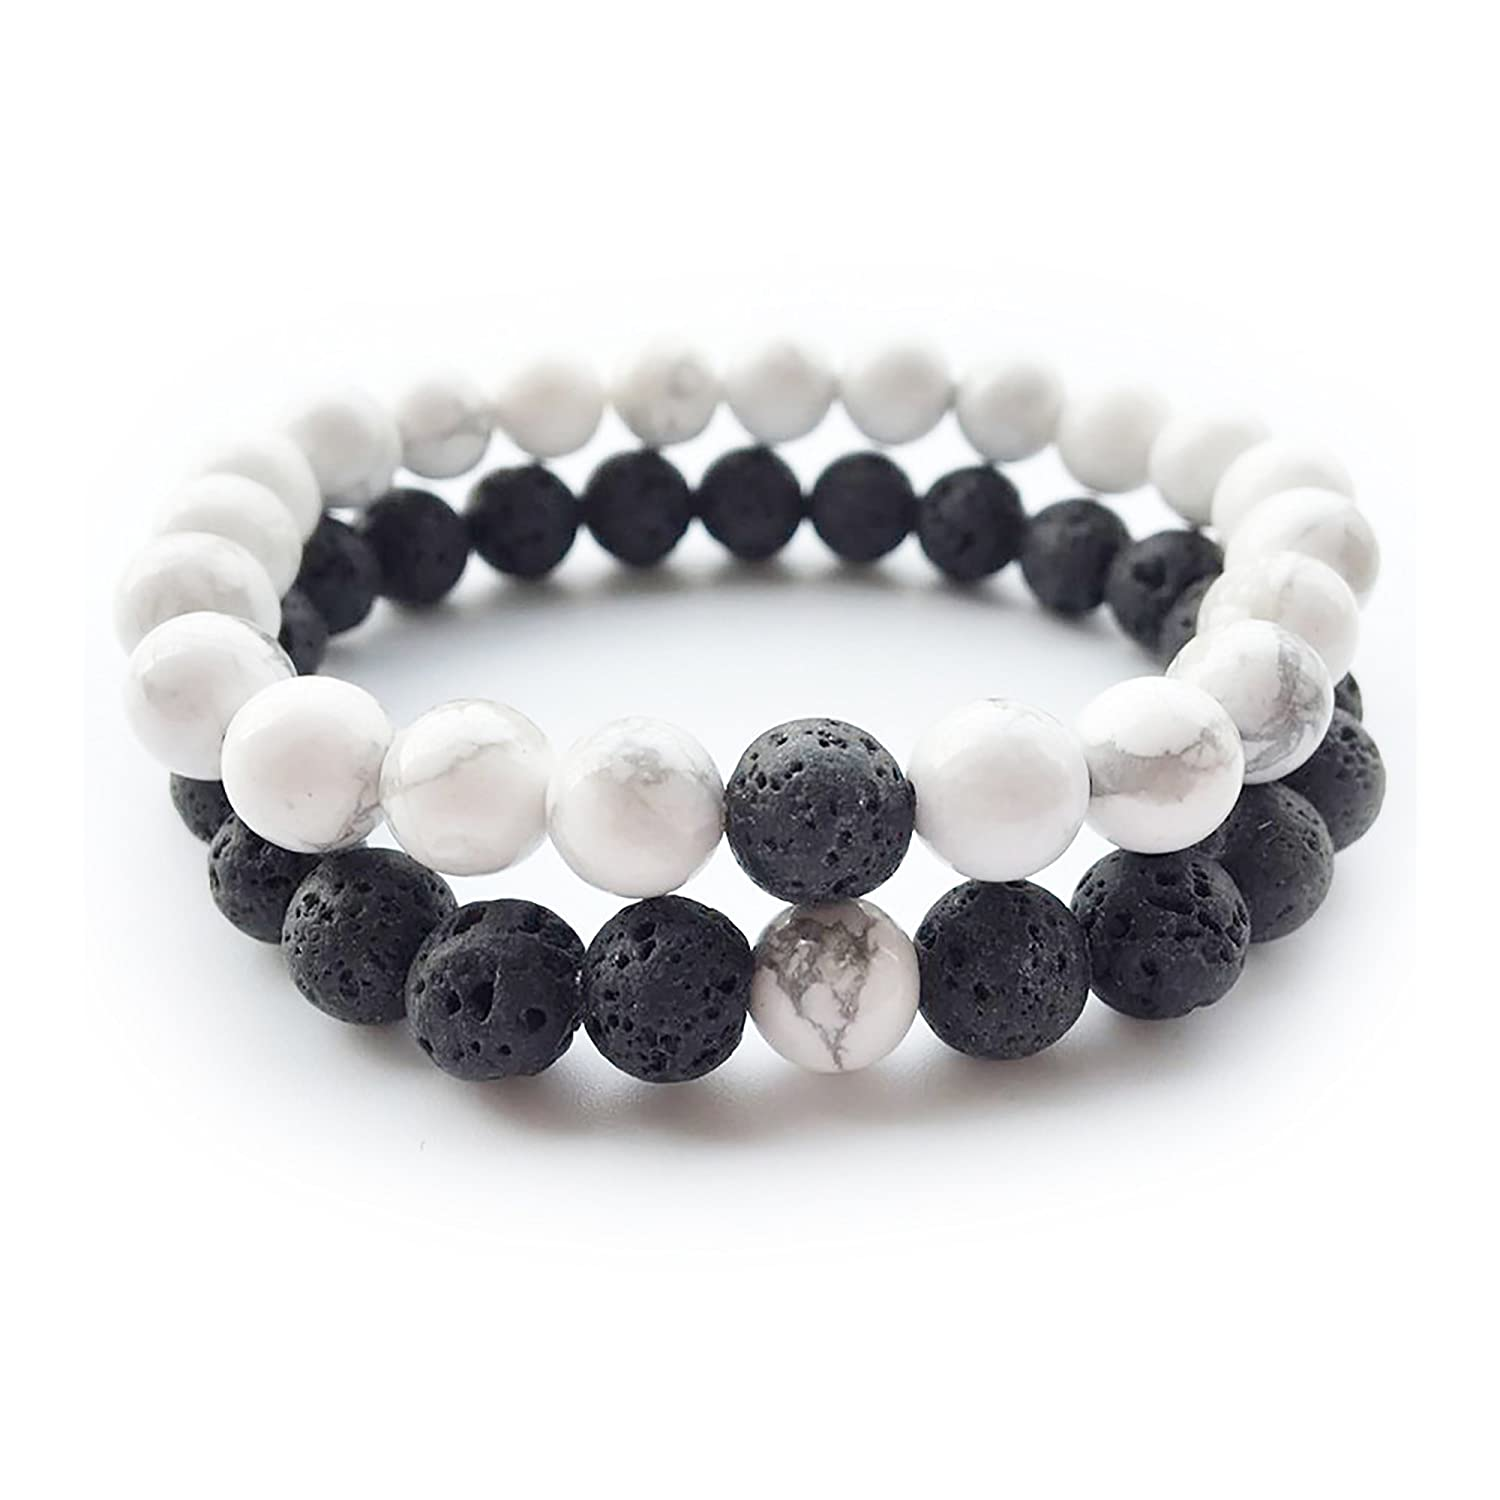 d4d74f95d67ff Yin and Yang Elastic Lava Stone Essential Oil Diffuser Bracelet (Pack of  2)  Amazon.ca  Toys   Games